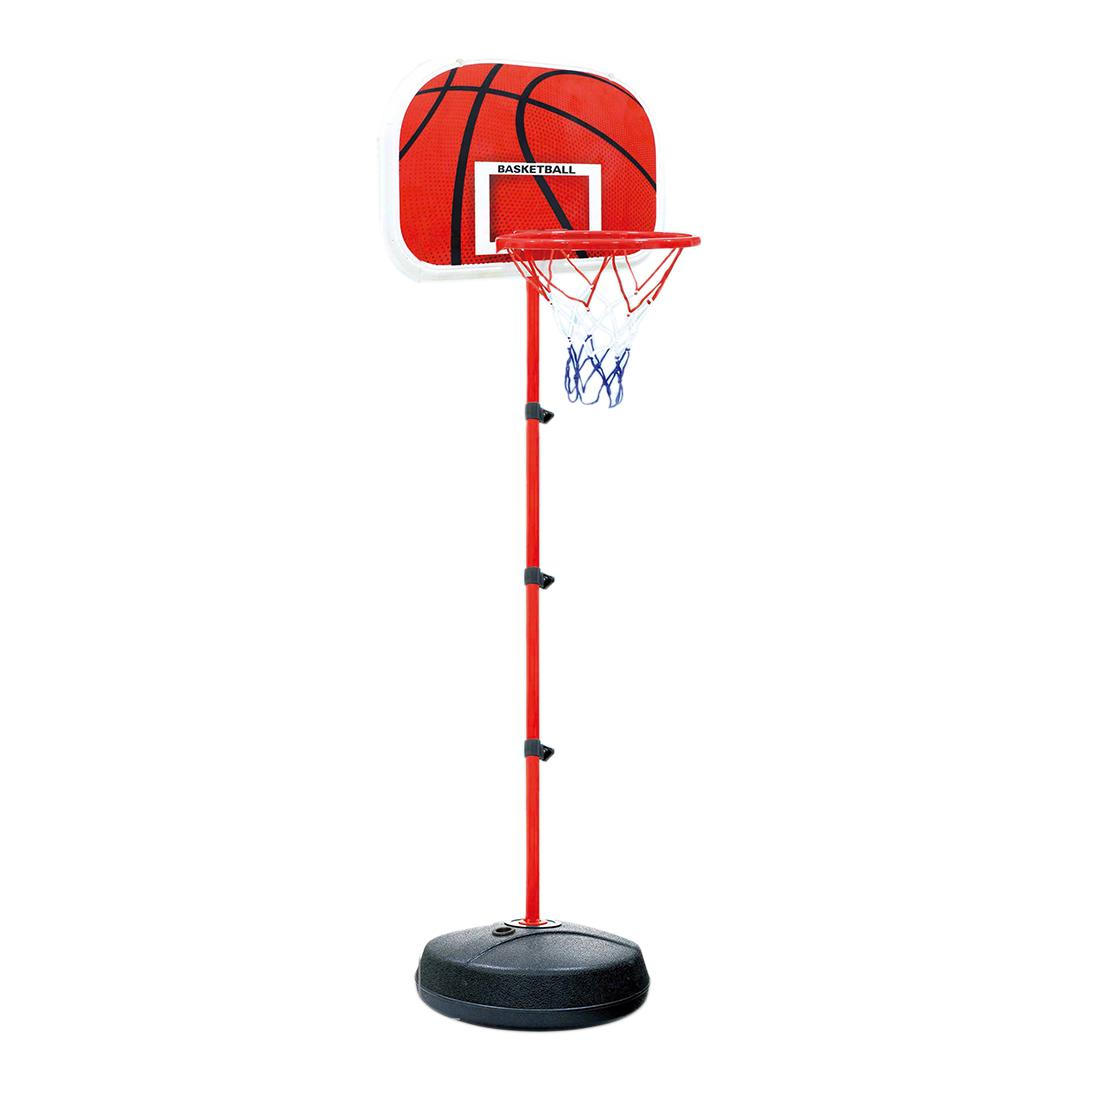 83-200CM Basketball Stands Height Adjustable Kids Basketball Goal Hoop Toy  Set with Plastic Frame and Conventional Base - Black + Red 47f0cac122